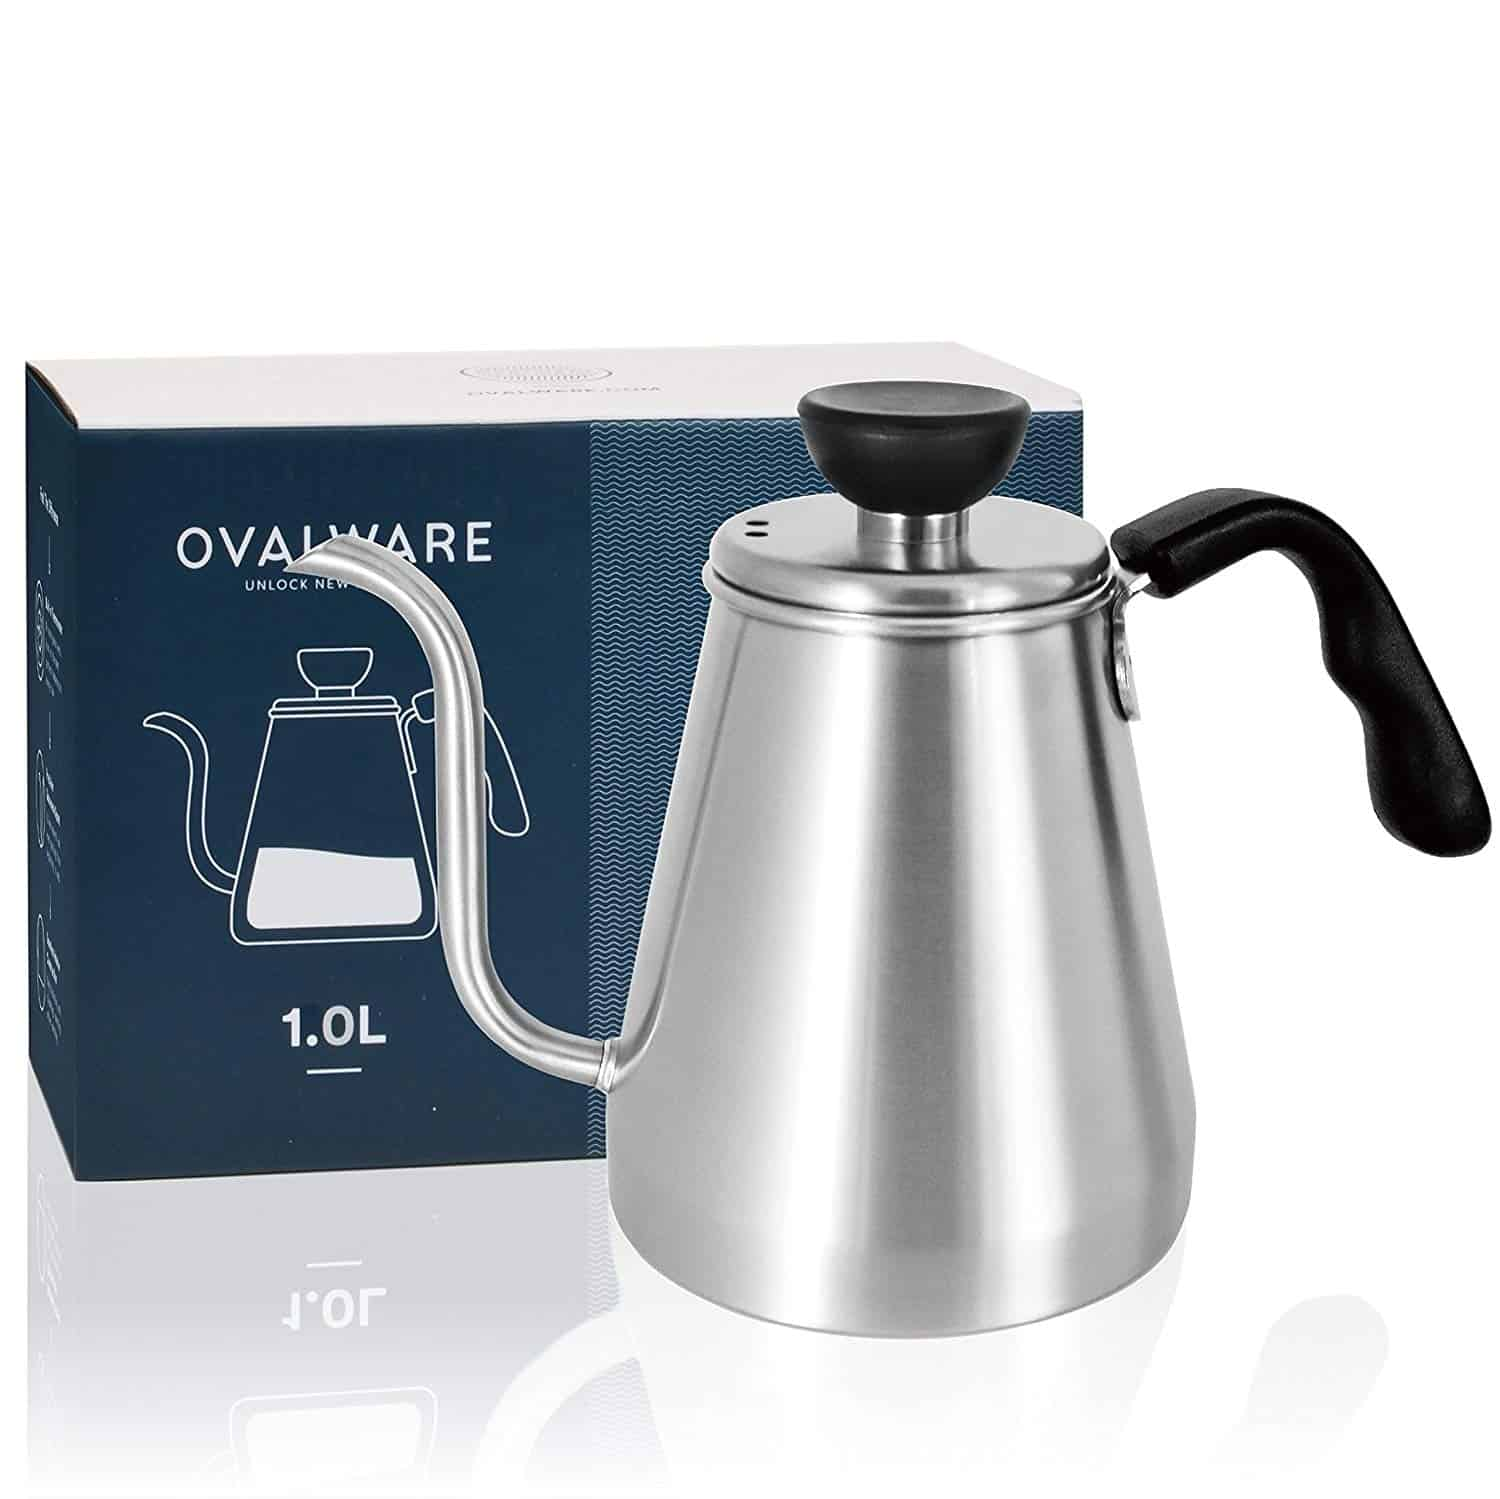 Ovalware pour over